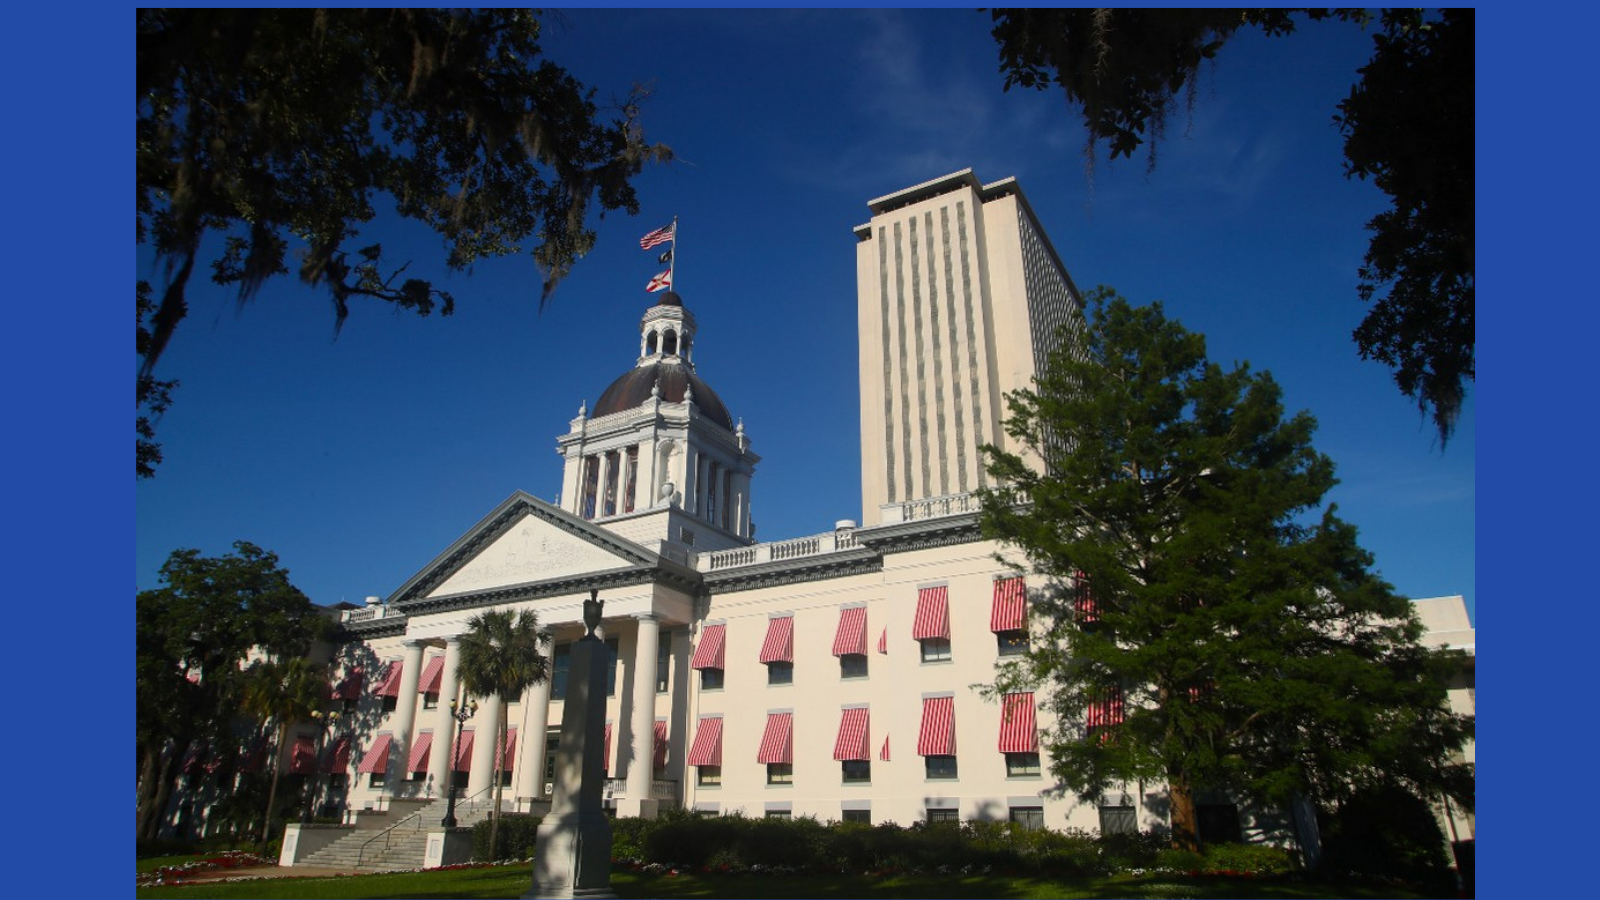 The Florida Capitol in Tallahassee, Fla., is pictured. | Phil Sears/AP Photo